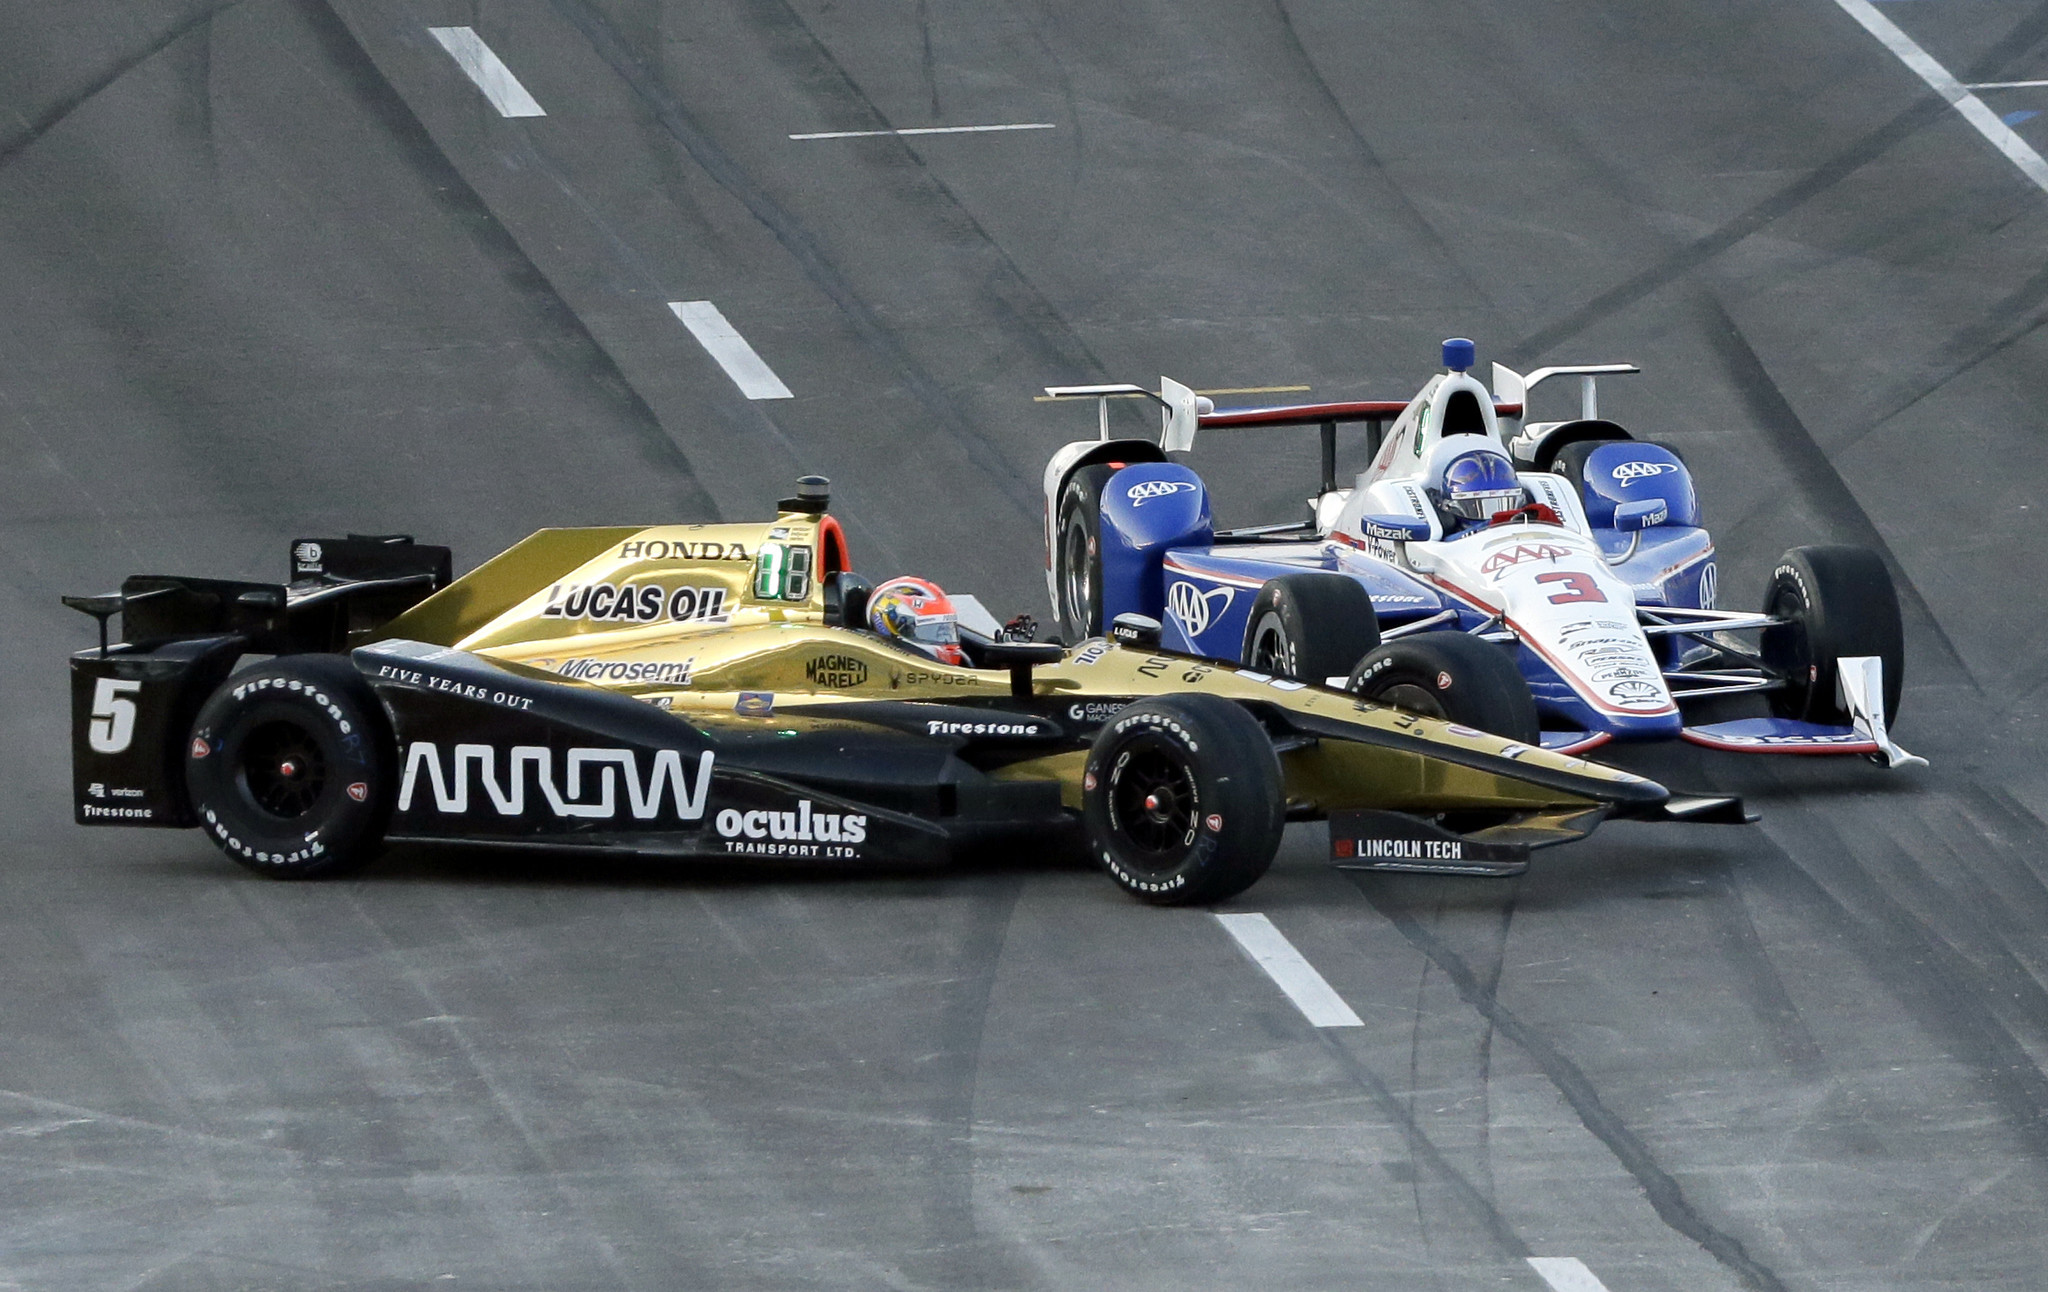 IndyCar race at Texas redflagged after big crash  The Morning Call